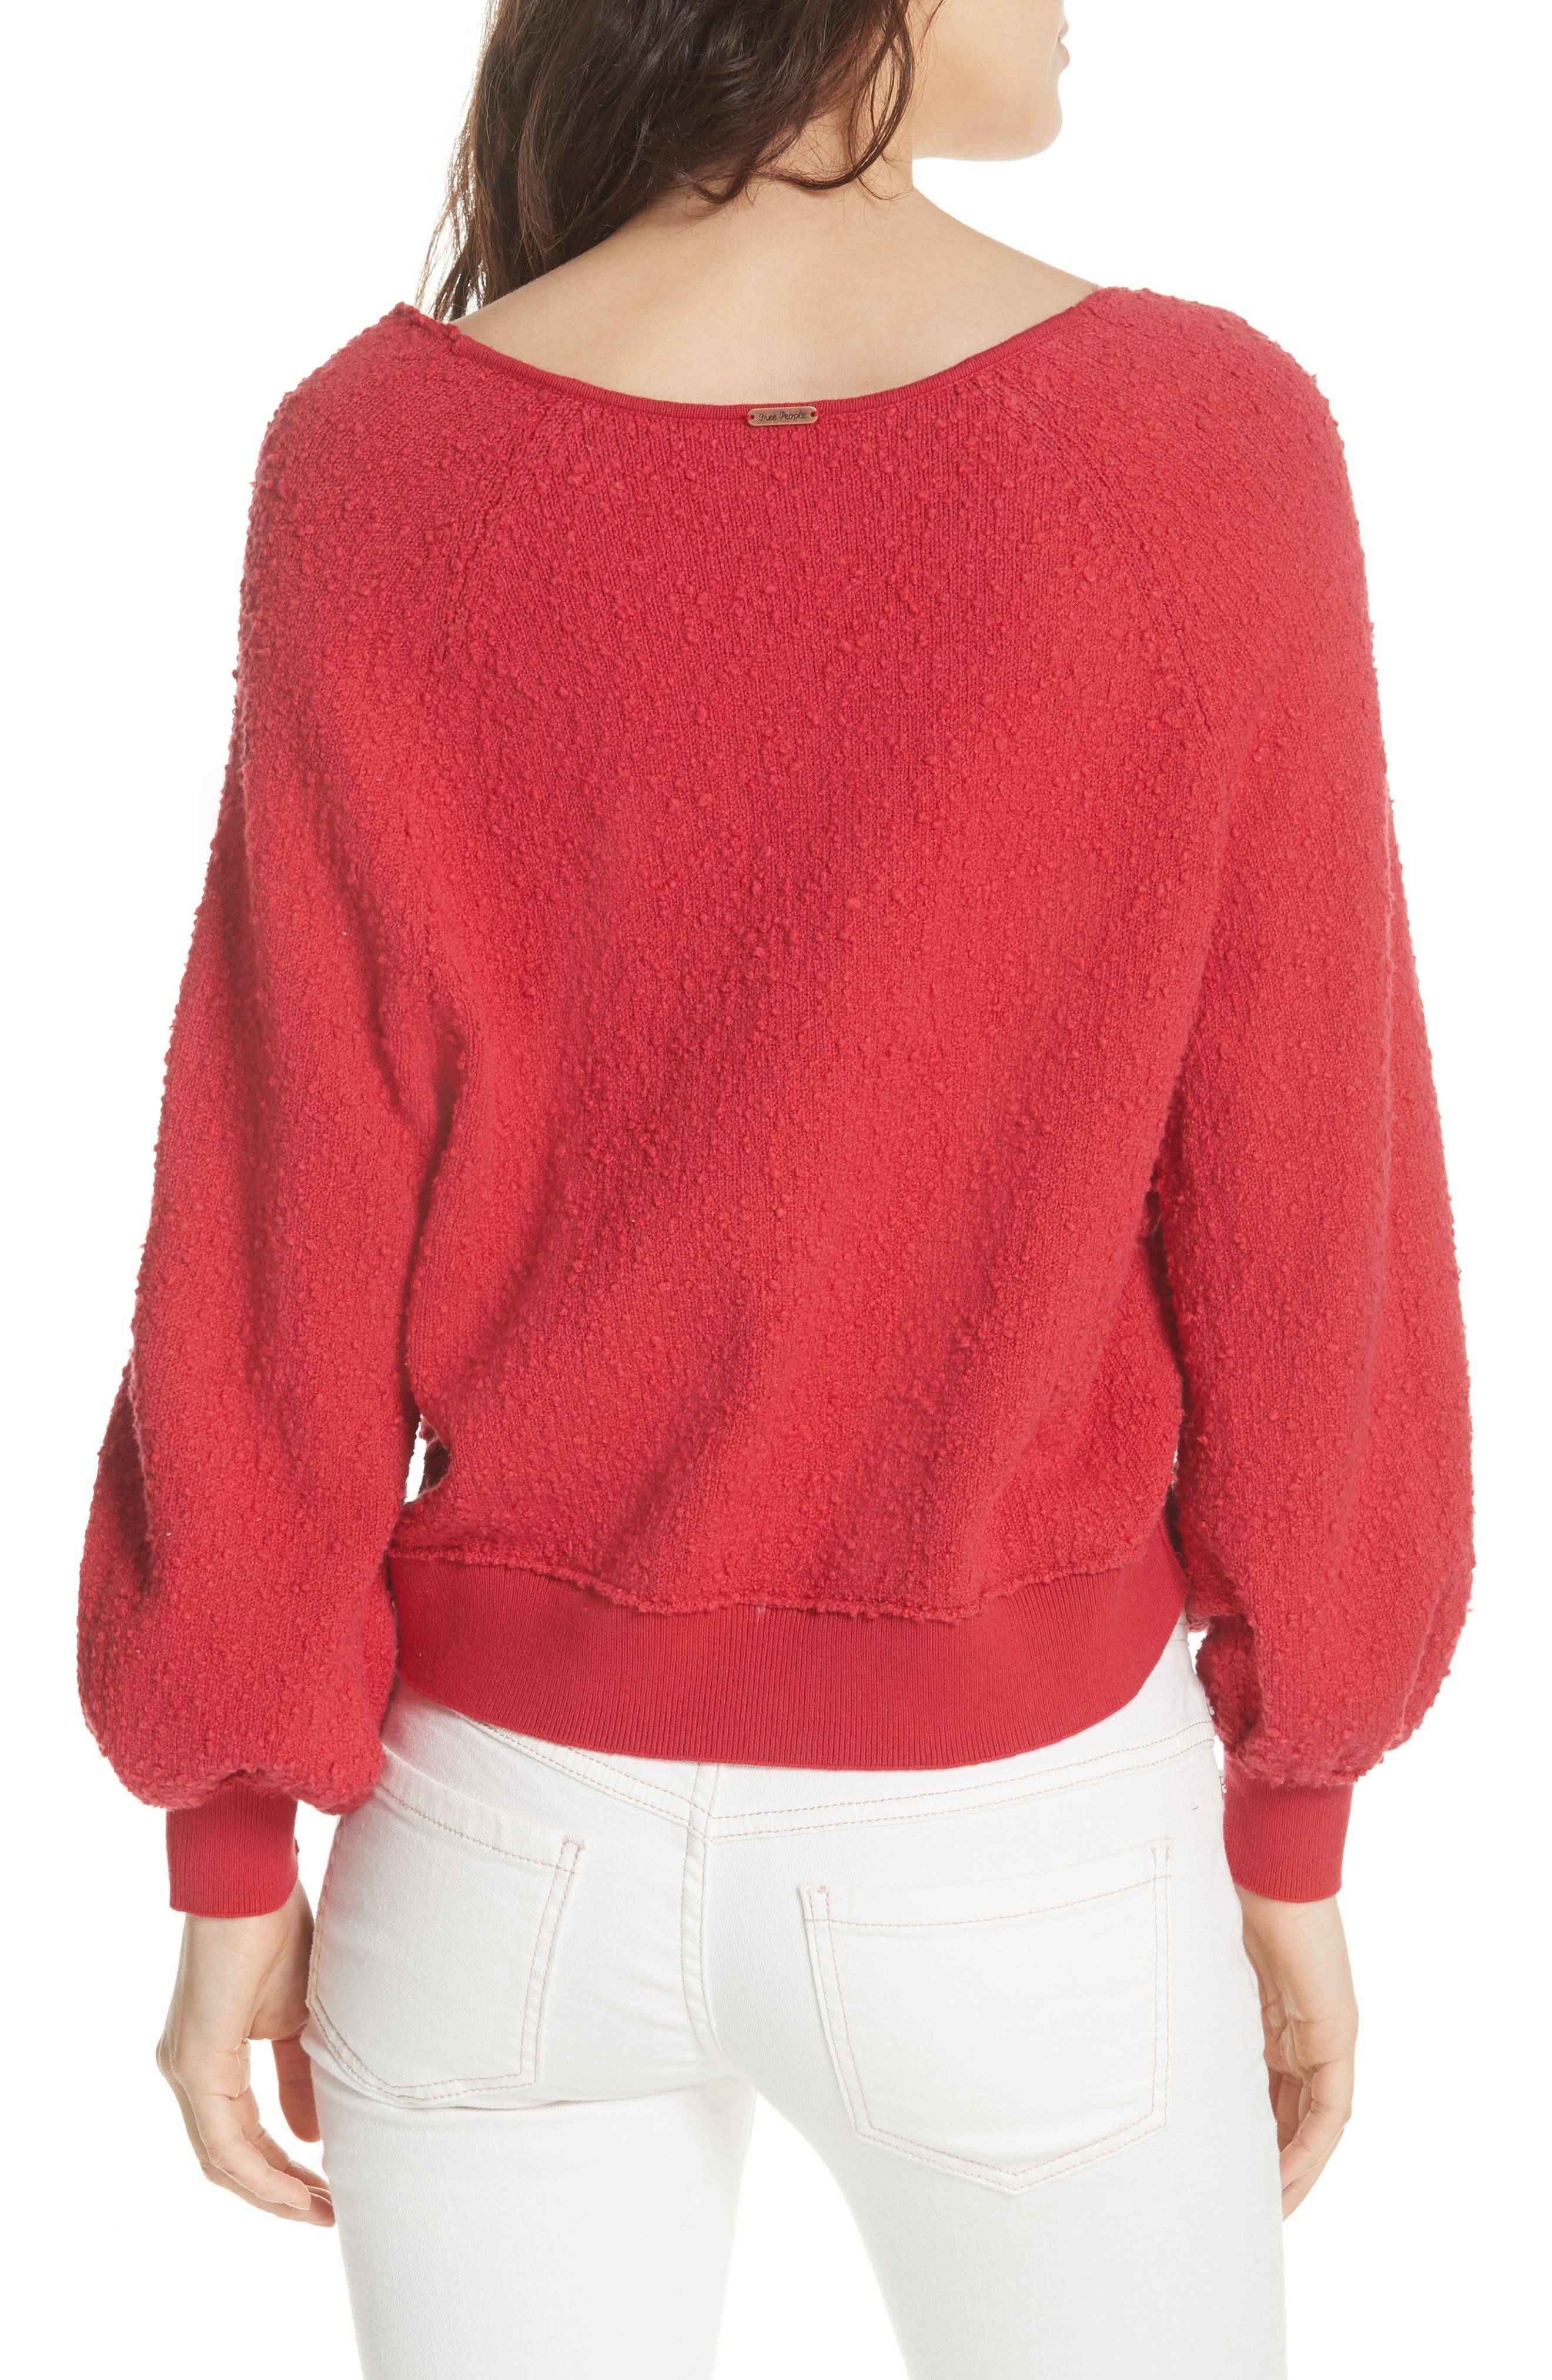 FREE PEOPLE, Found My Friend Sweater, Alternate thumbnail 2, color, 600